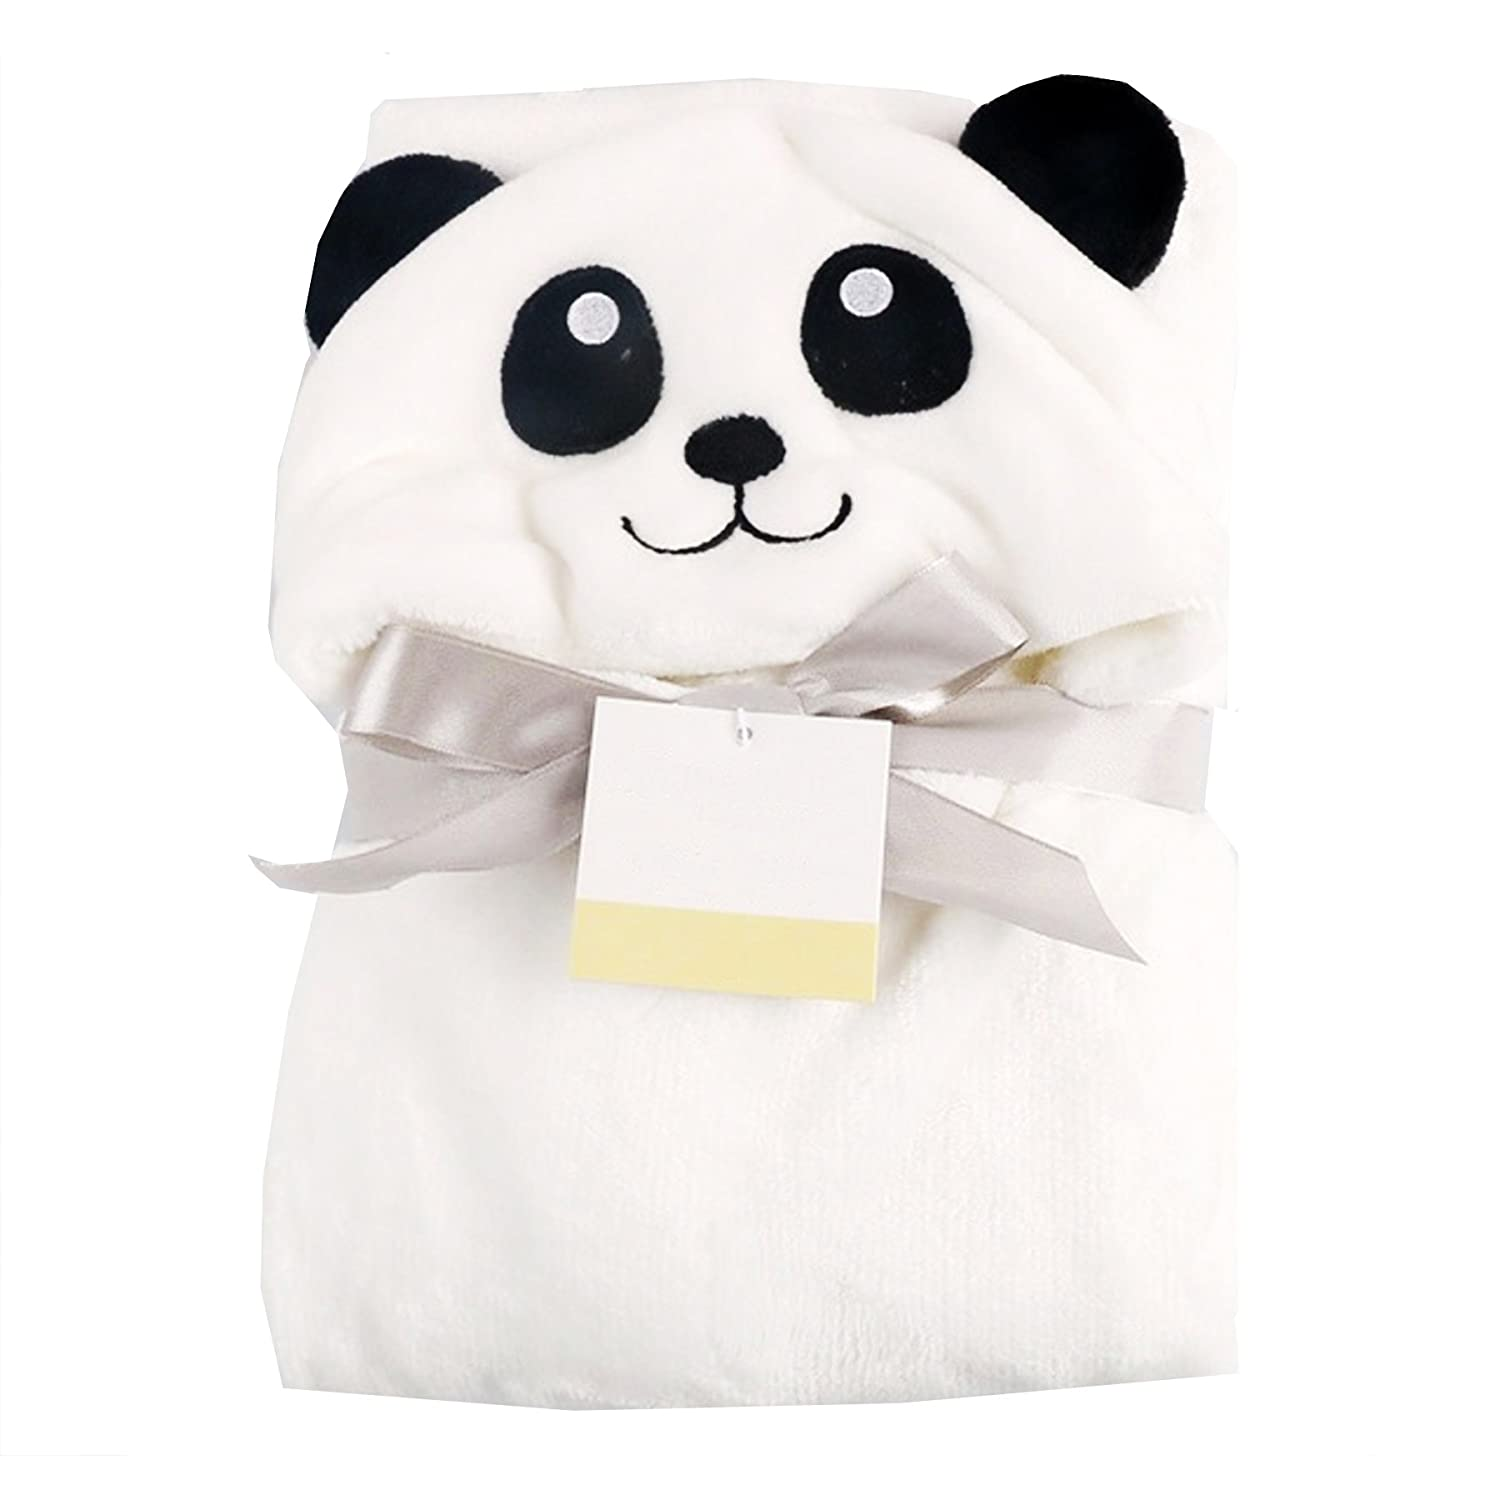 Cutieco AMZ-C1-Panda Luxury Series Super Soft Baby Sleeping Bag for New Born Babies (White)